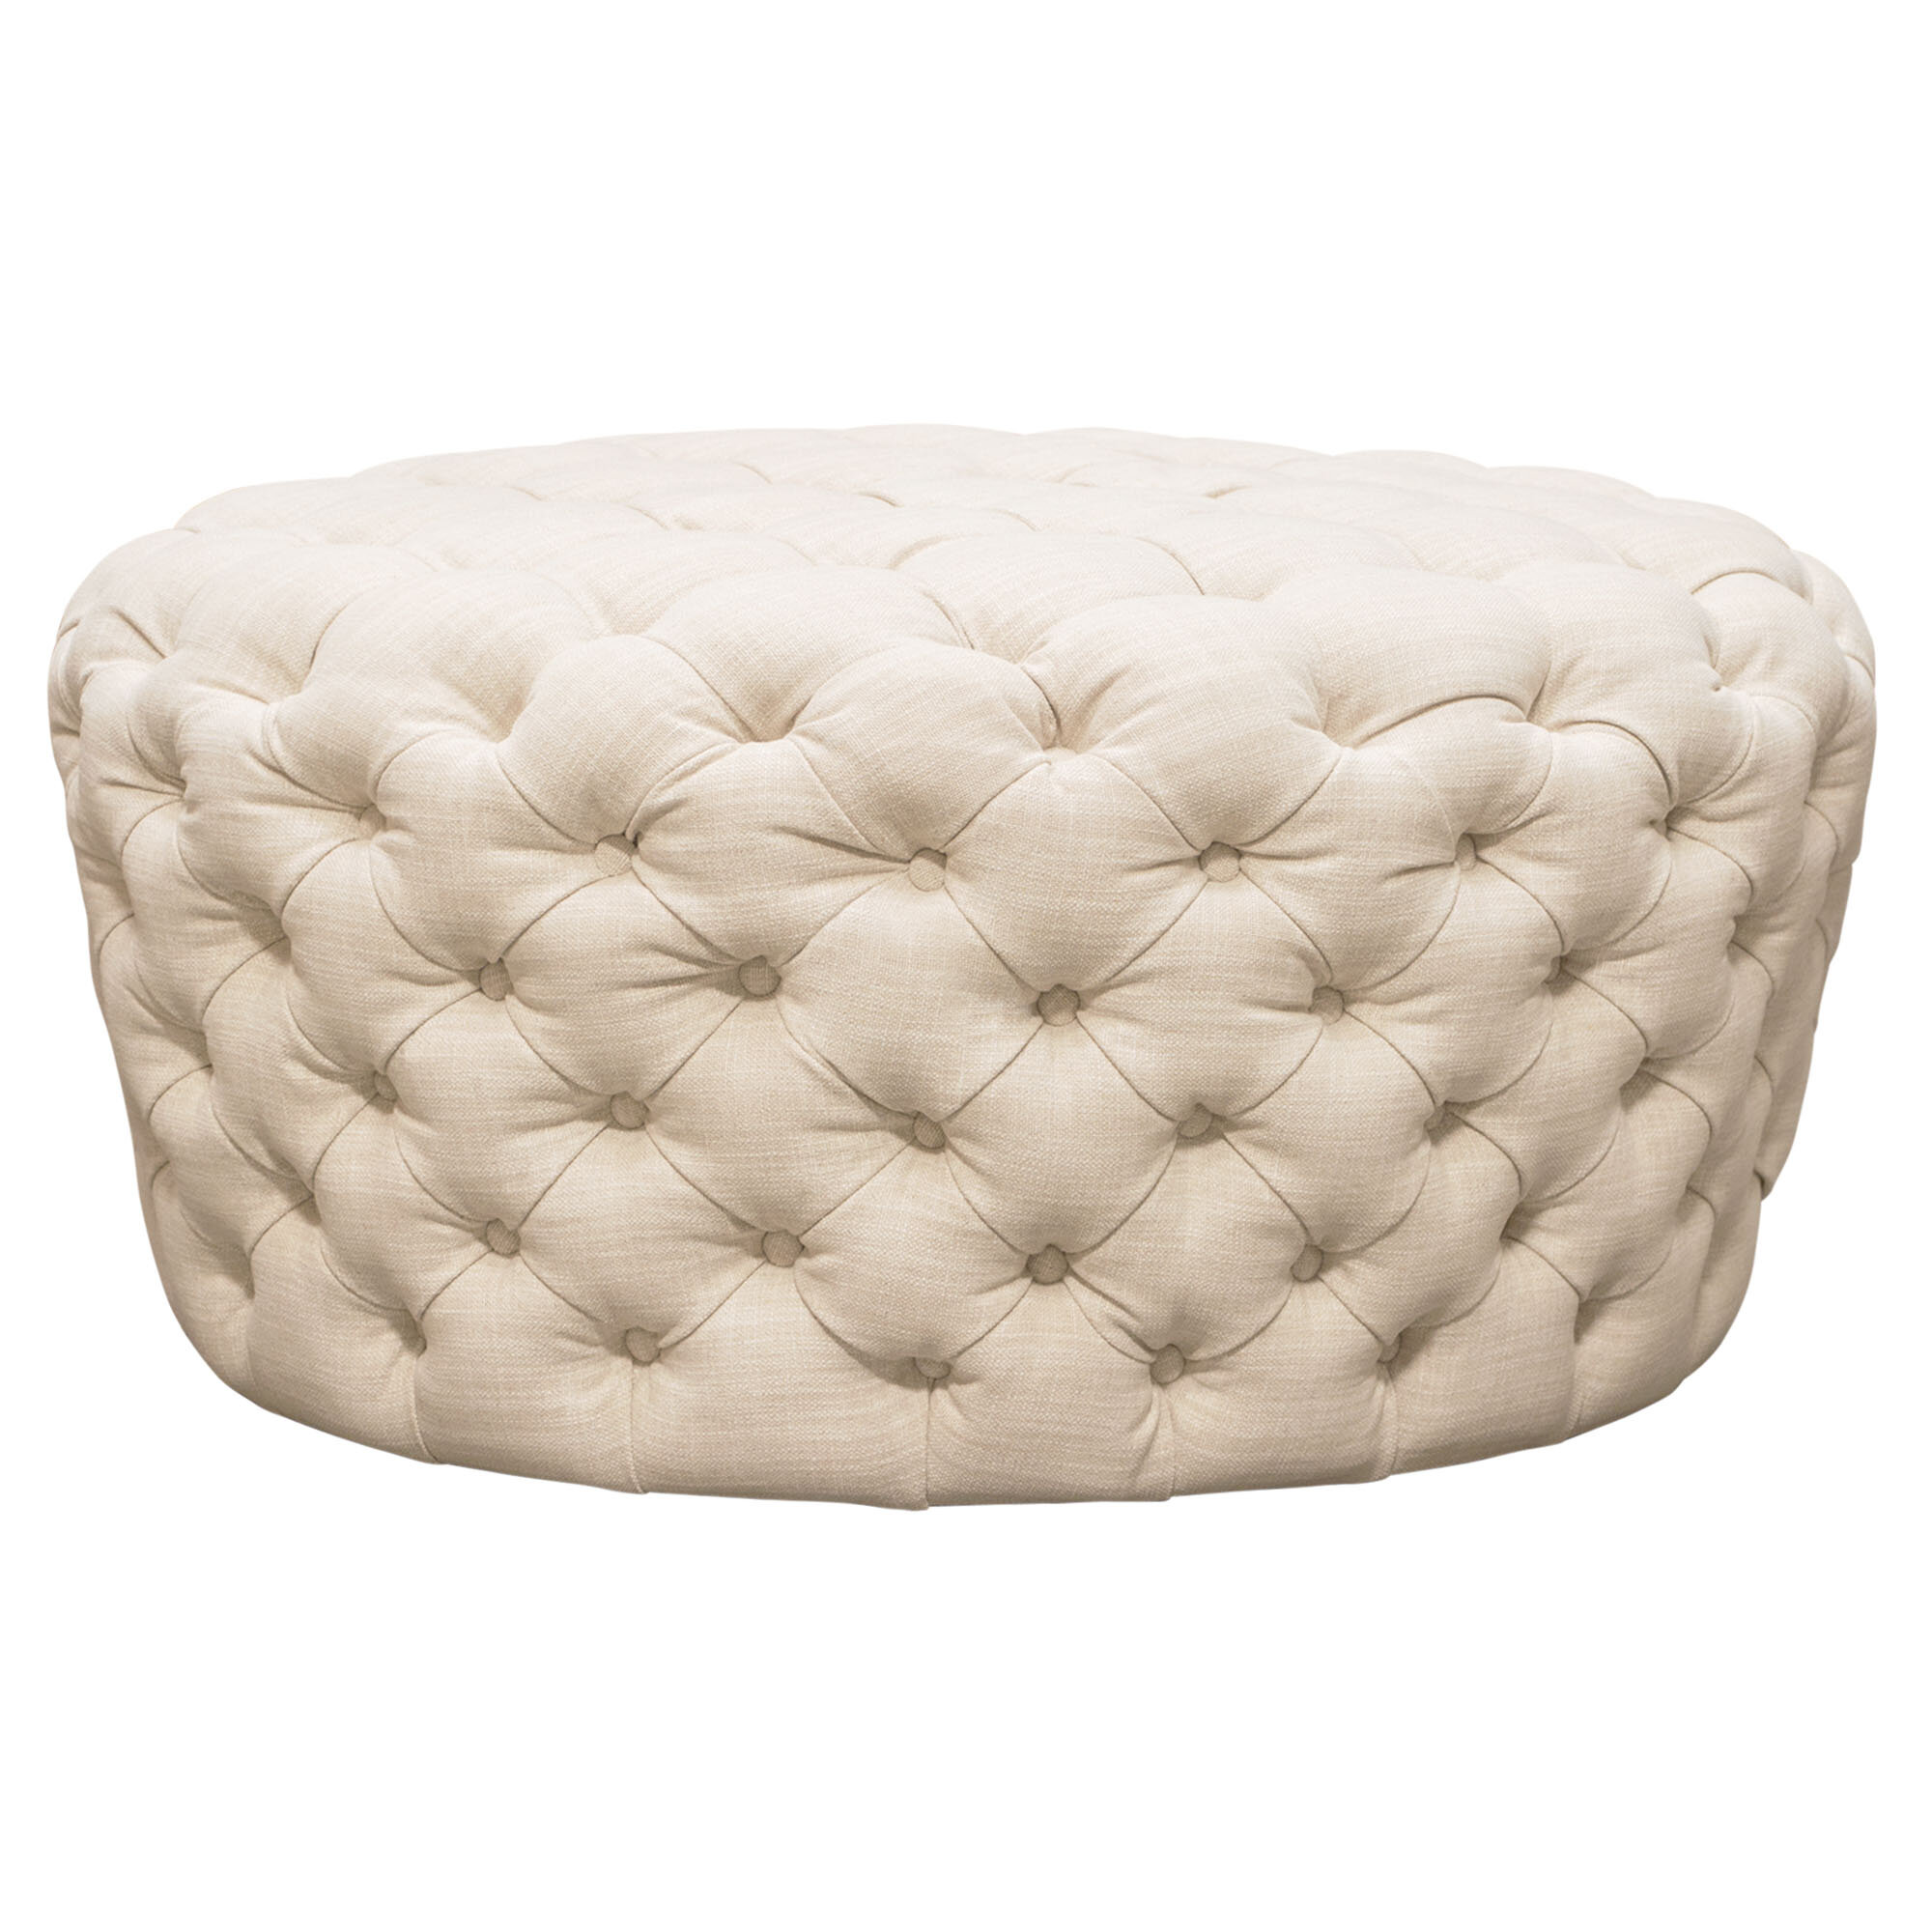 Surprising Posh Round Tufted Pouf Machost Co Dining Chair Design Ideas Machostcouk